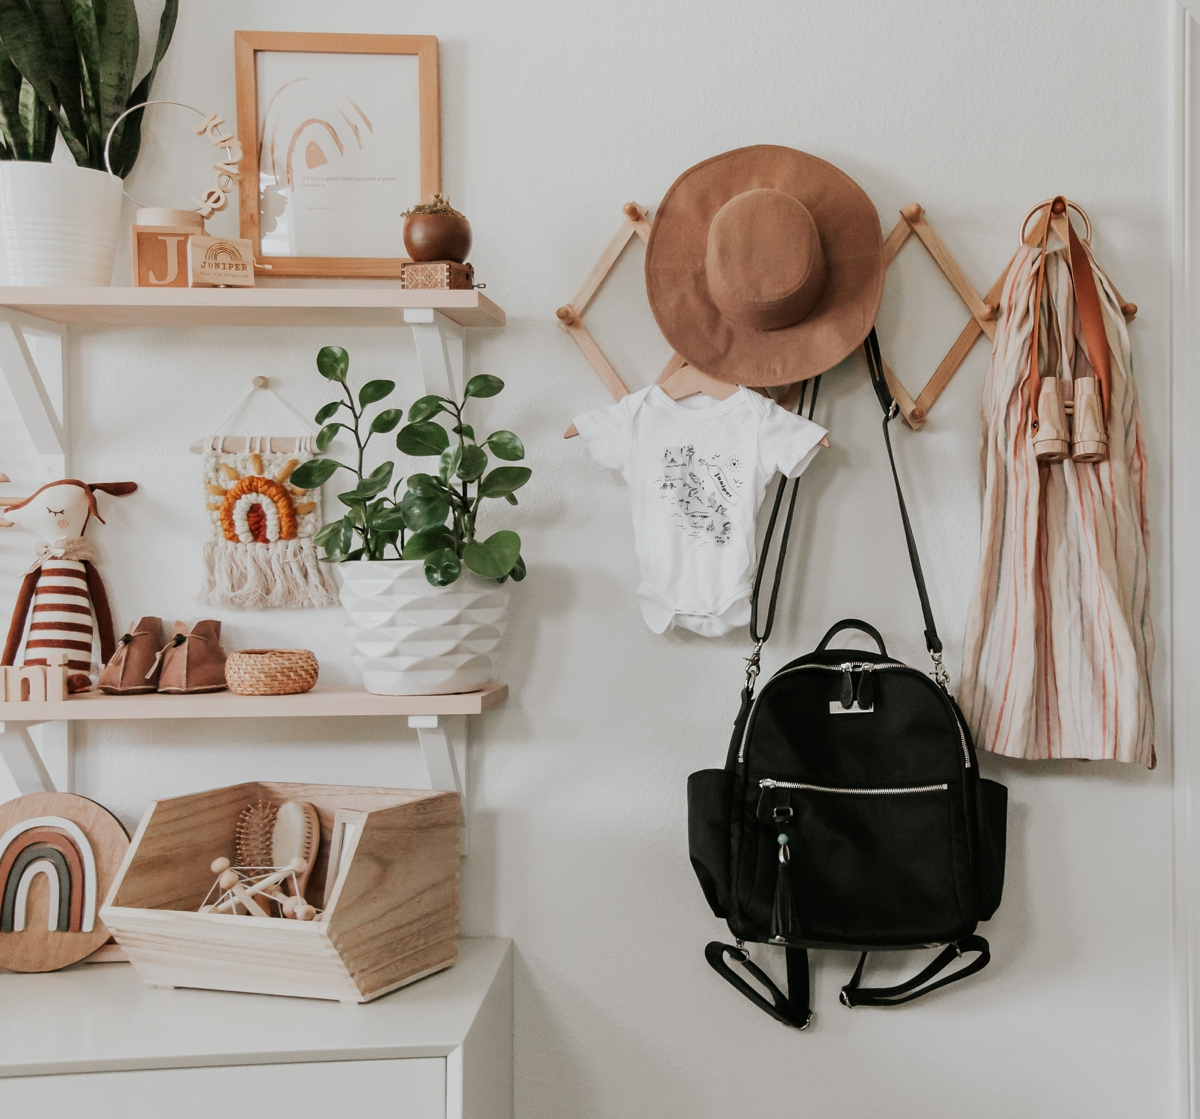 Kandis_Marino_Photography_Lifestyle_Lily_Jade_Diaper_Bag_Influencer_Abassador_Baby_Mom_Blogger_Mommy_Blog_Newborn_Pregnancy_0071.jpg